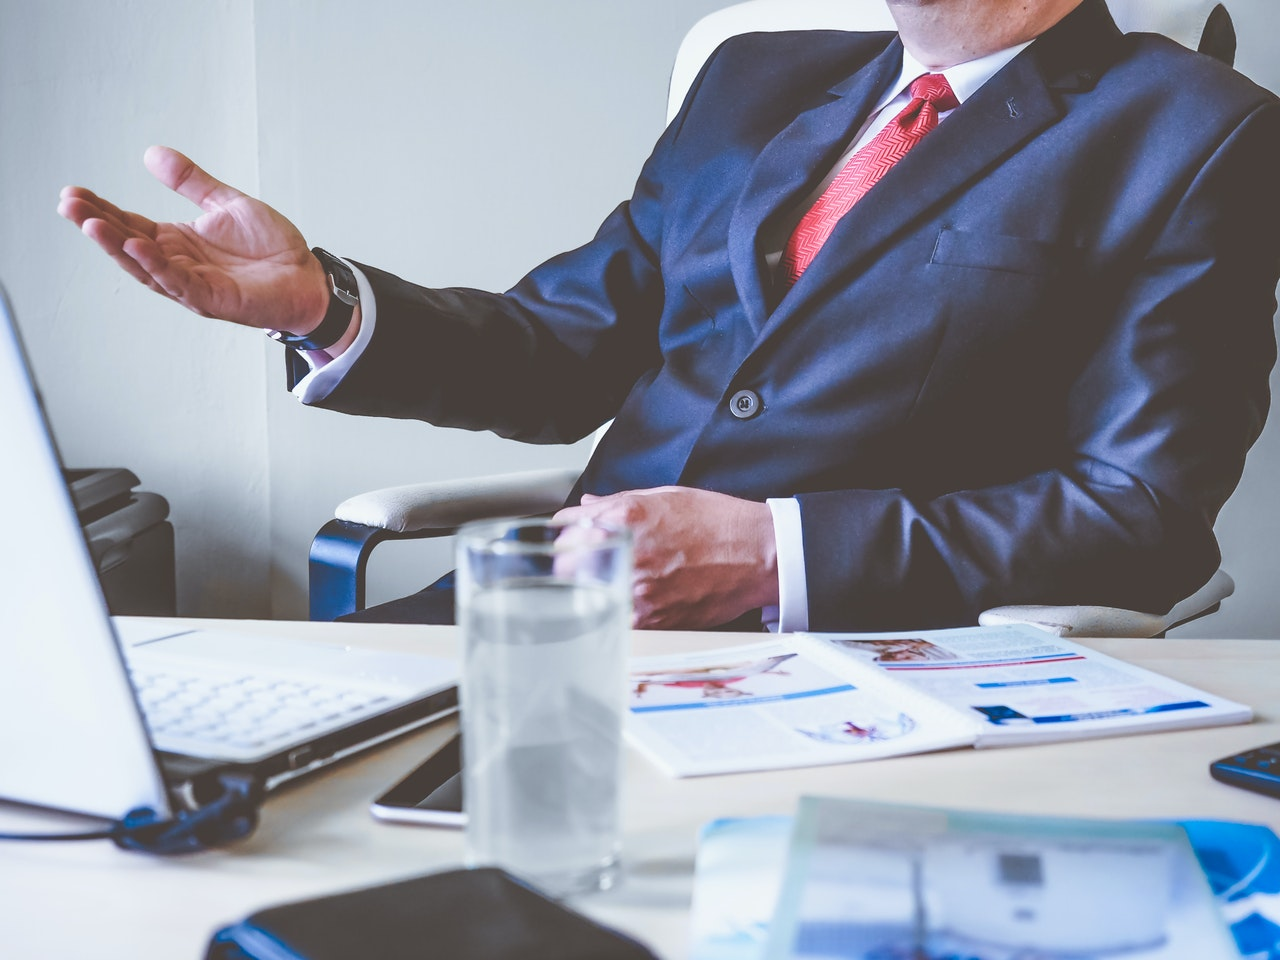 Check Out Some of the Best Tips for Interviews